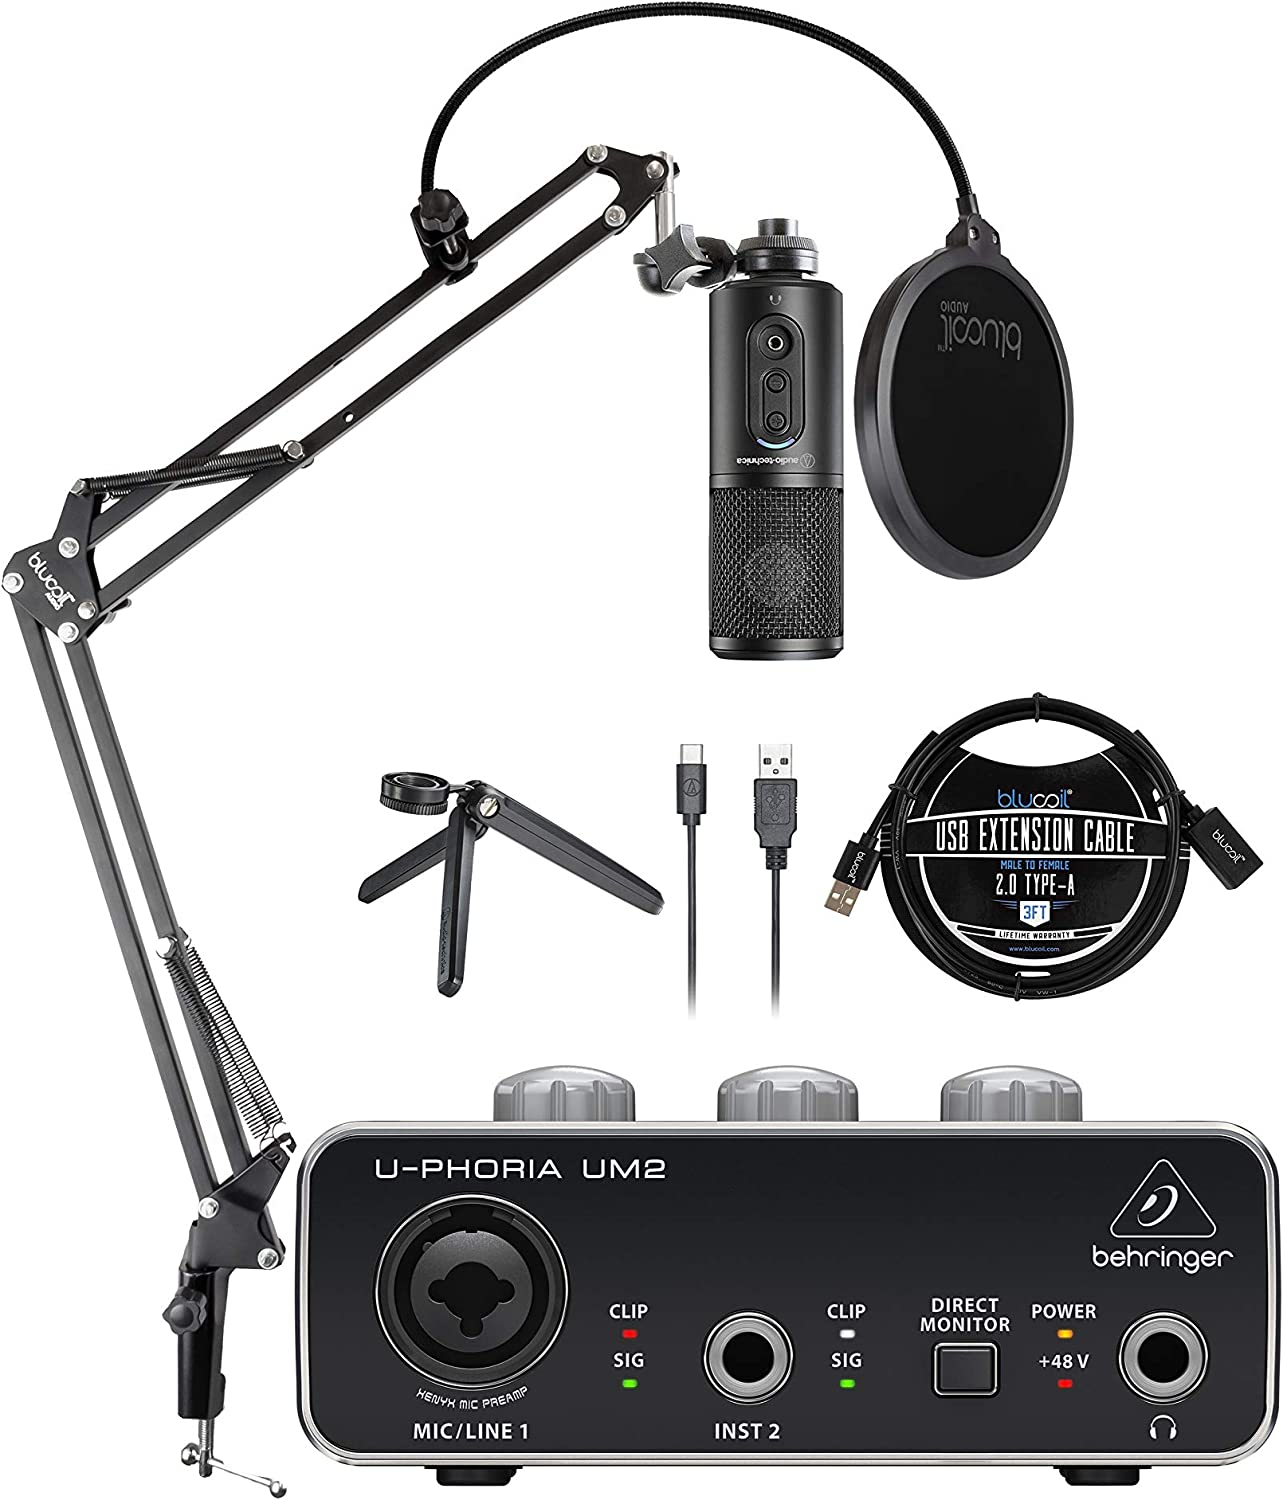 Audio-Technica ATR2500x-USB Condenser Microphone for Home Recording Bundle with U-PHORIA UM2 USB Audio Interface for Windows and Mac, Blucoil Boom Arm Plus Pop Filter, and 3' USB Extension Cable